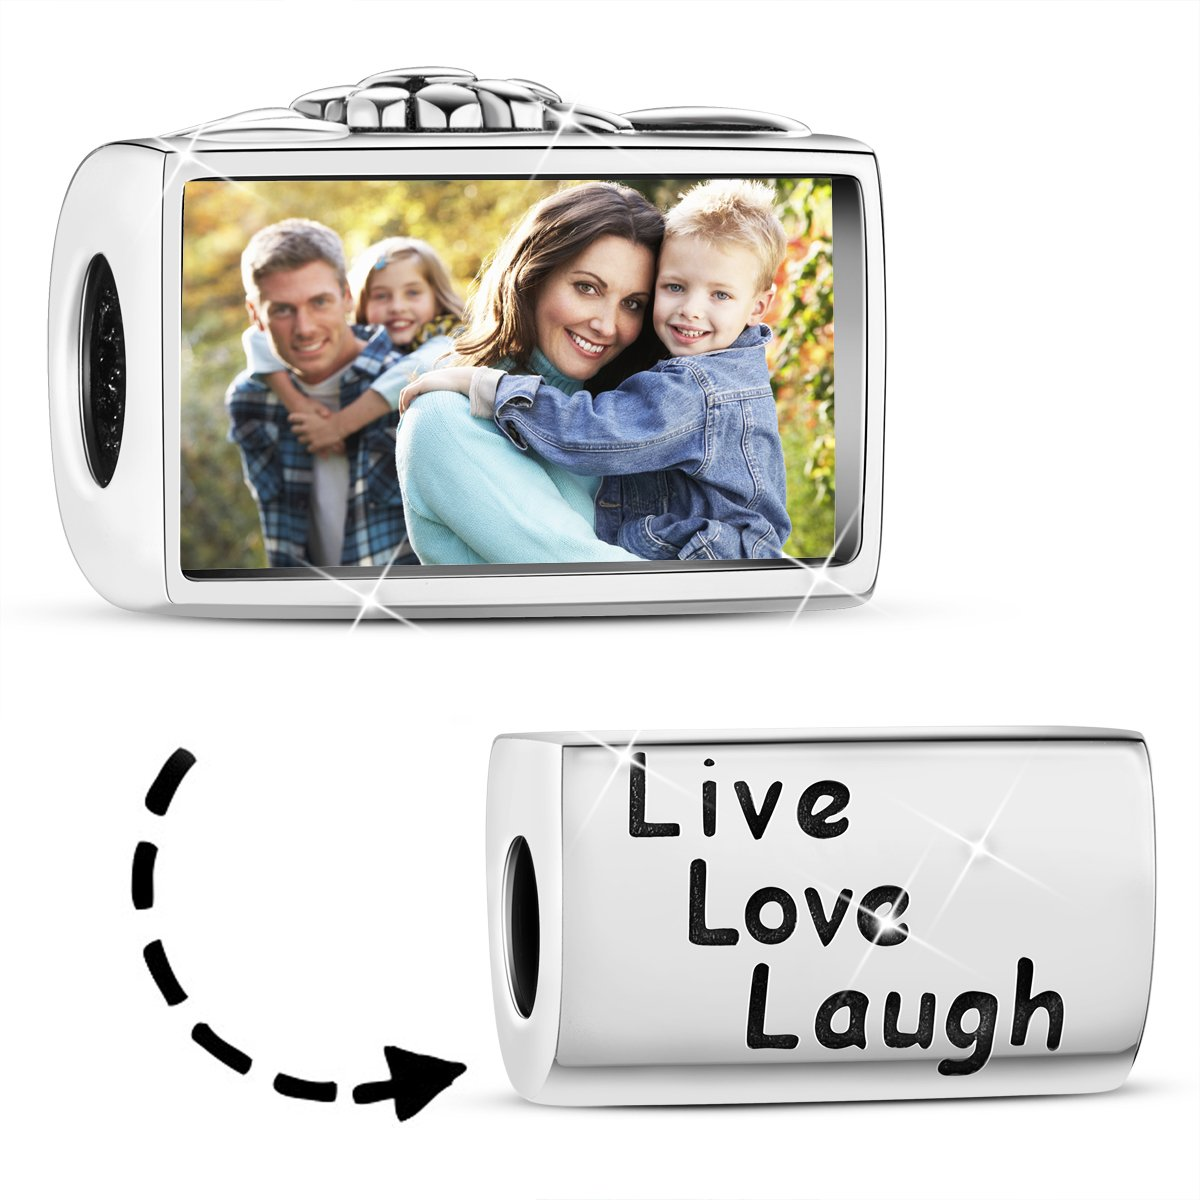 TINYSAND 925 Sterling Silver Live Love Laugh Personalized Customize Photo Picture ID Tag Charms Beads Fit European Bracelet Anklet Keepsake Memorial Gift